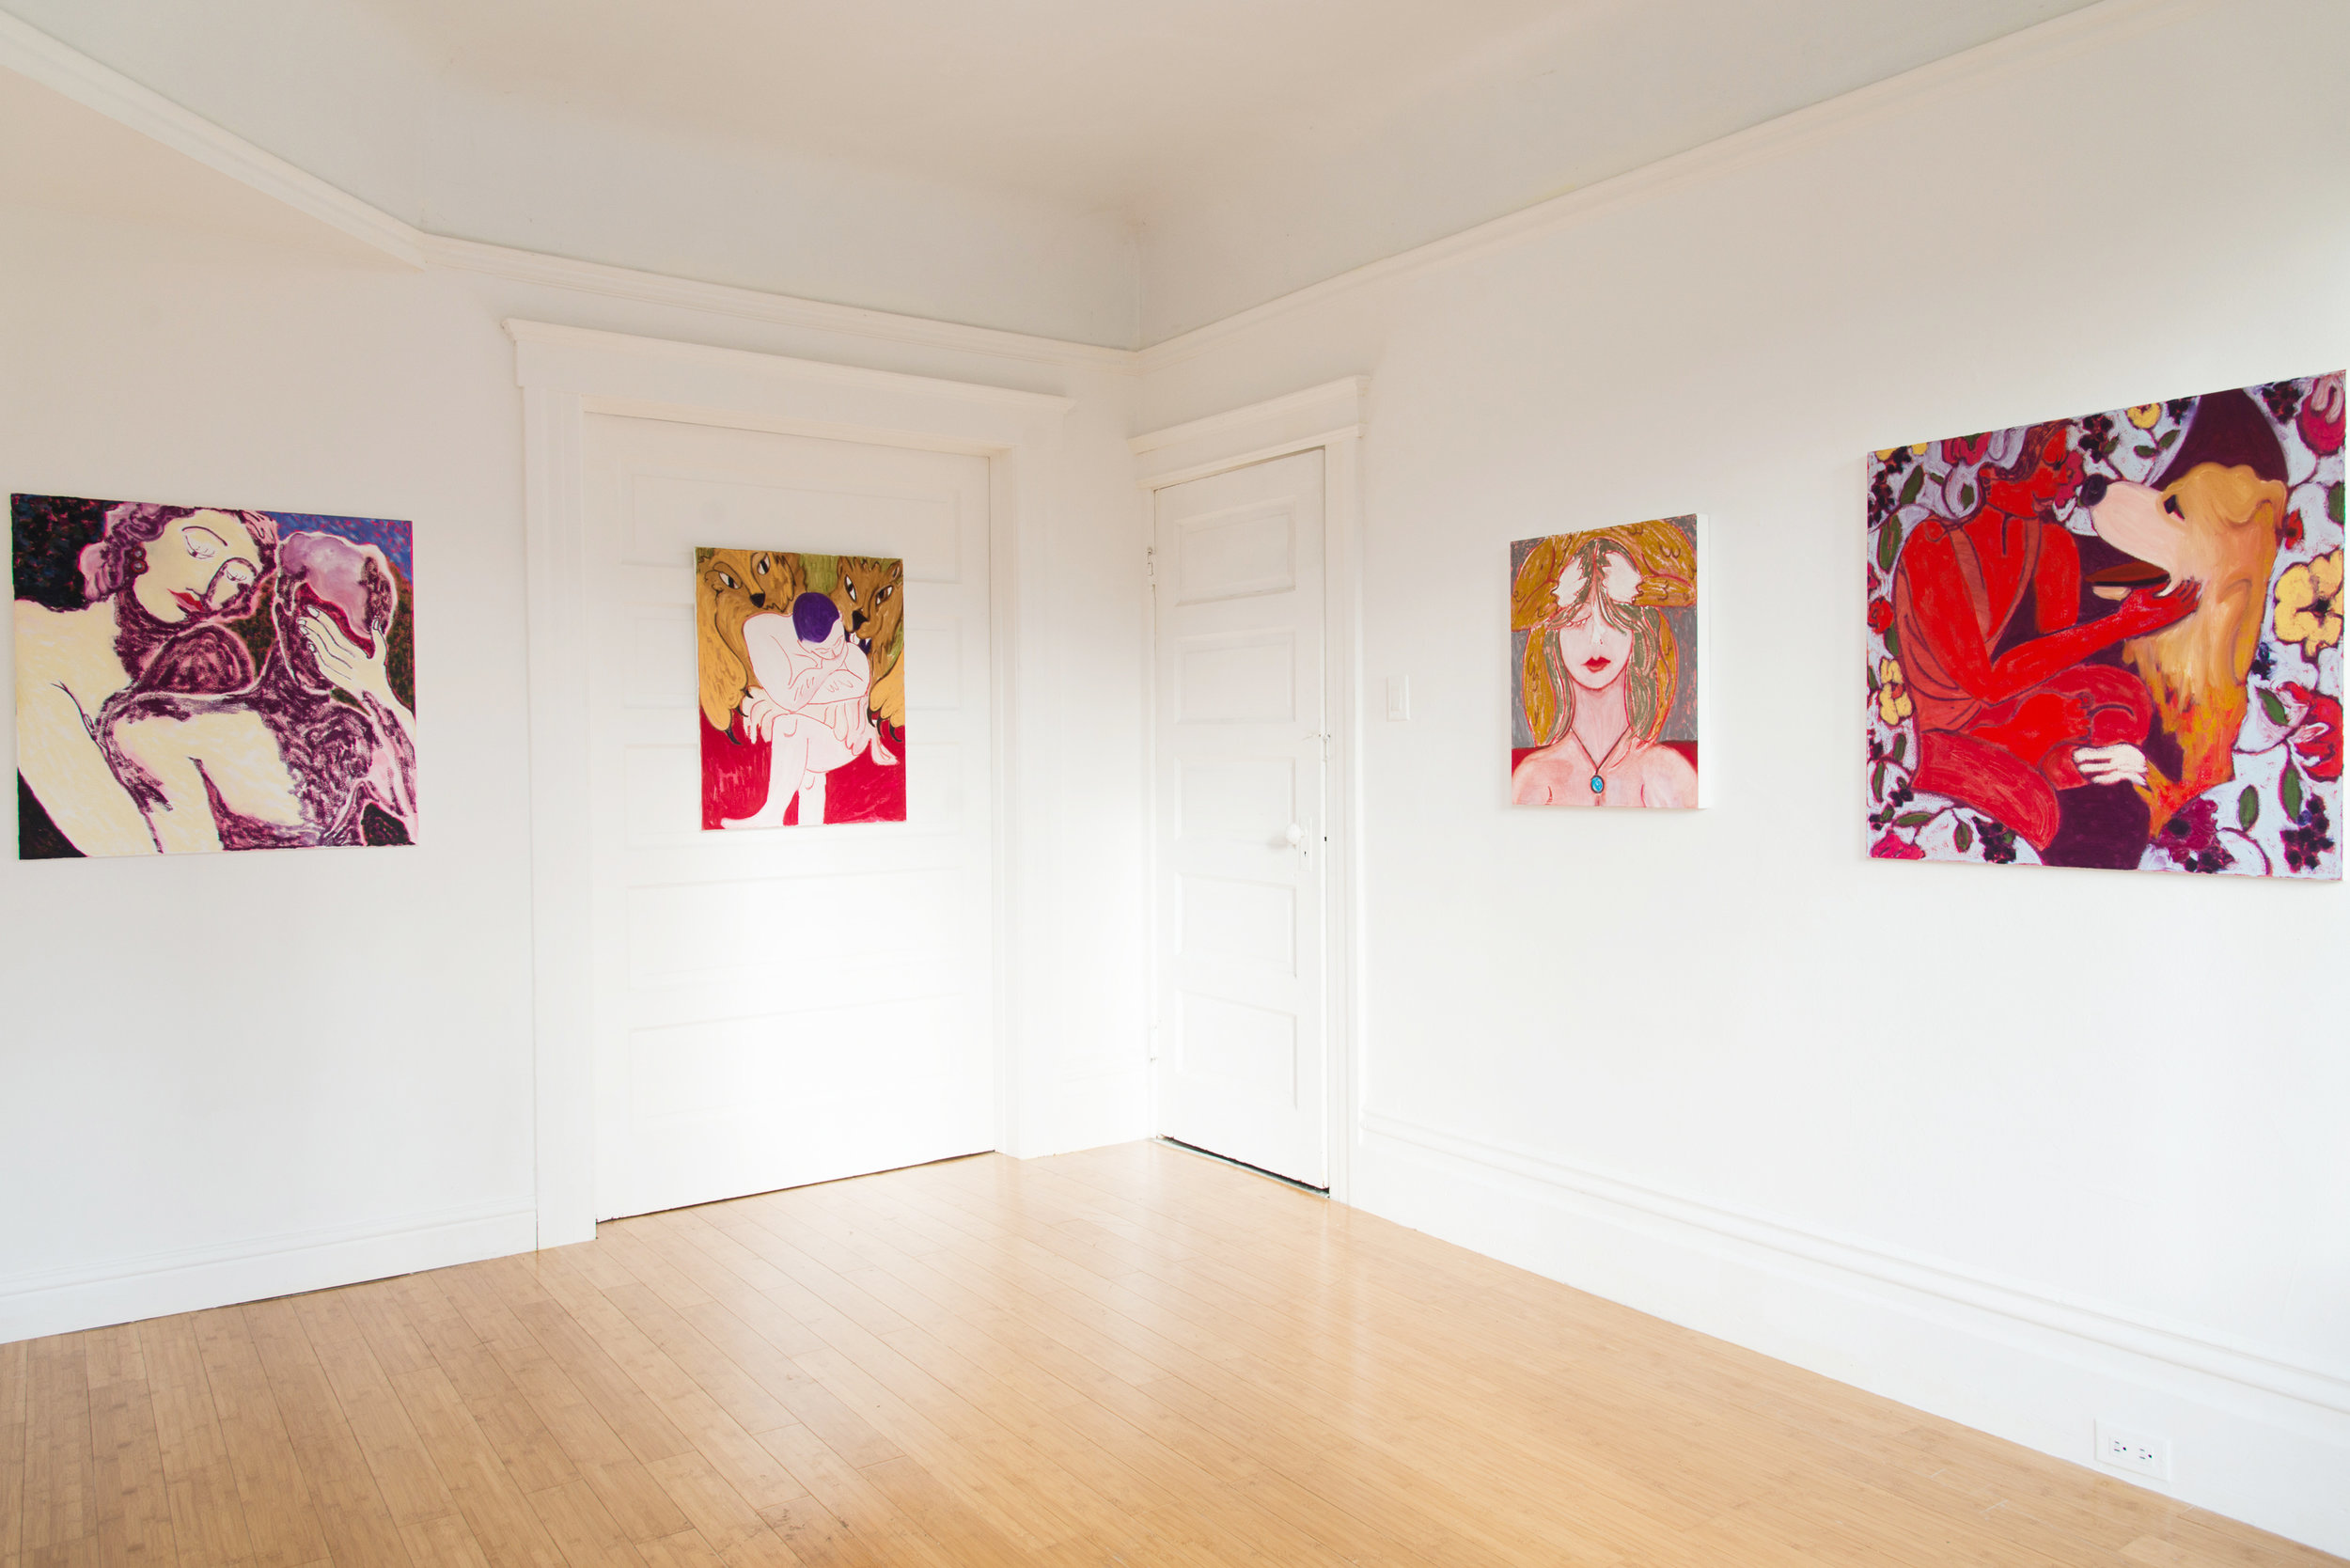 Installation view of The Dog's Dream, a solo exhibition at 100% (San Francisco, CA). 2017.